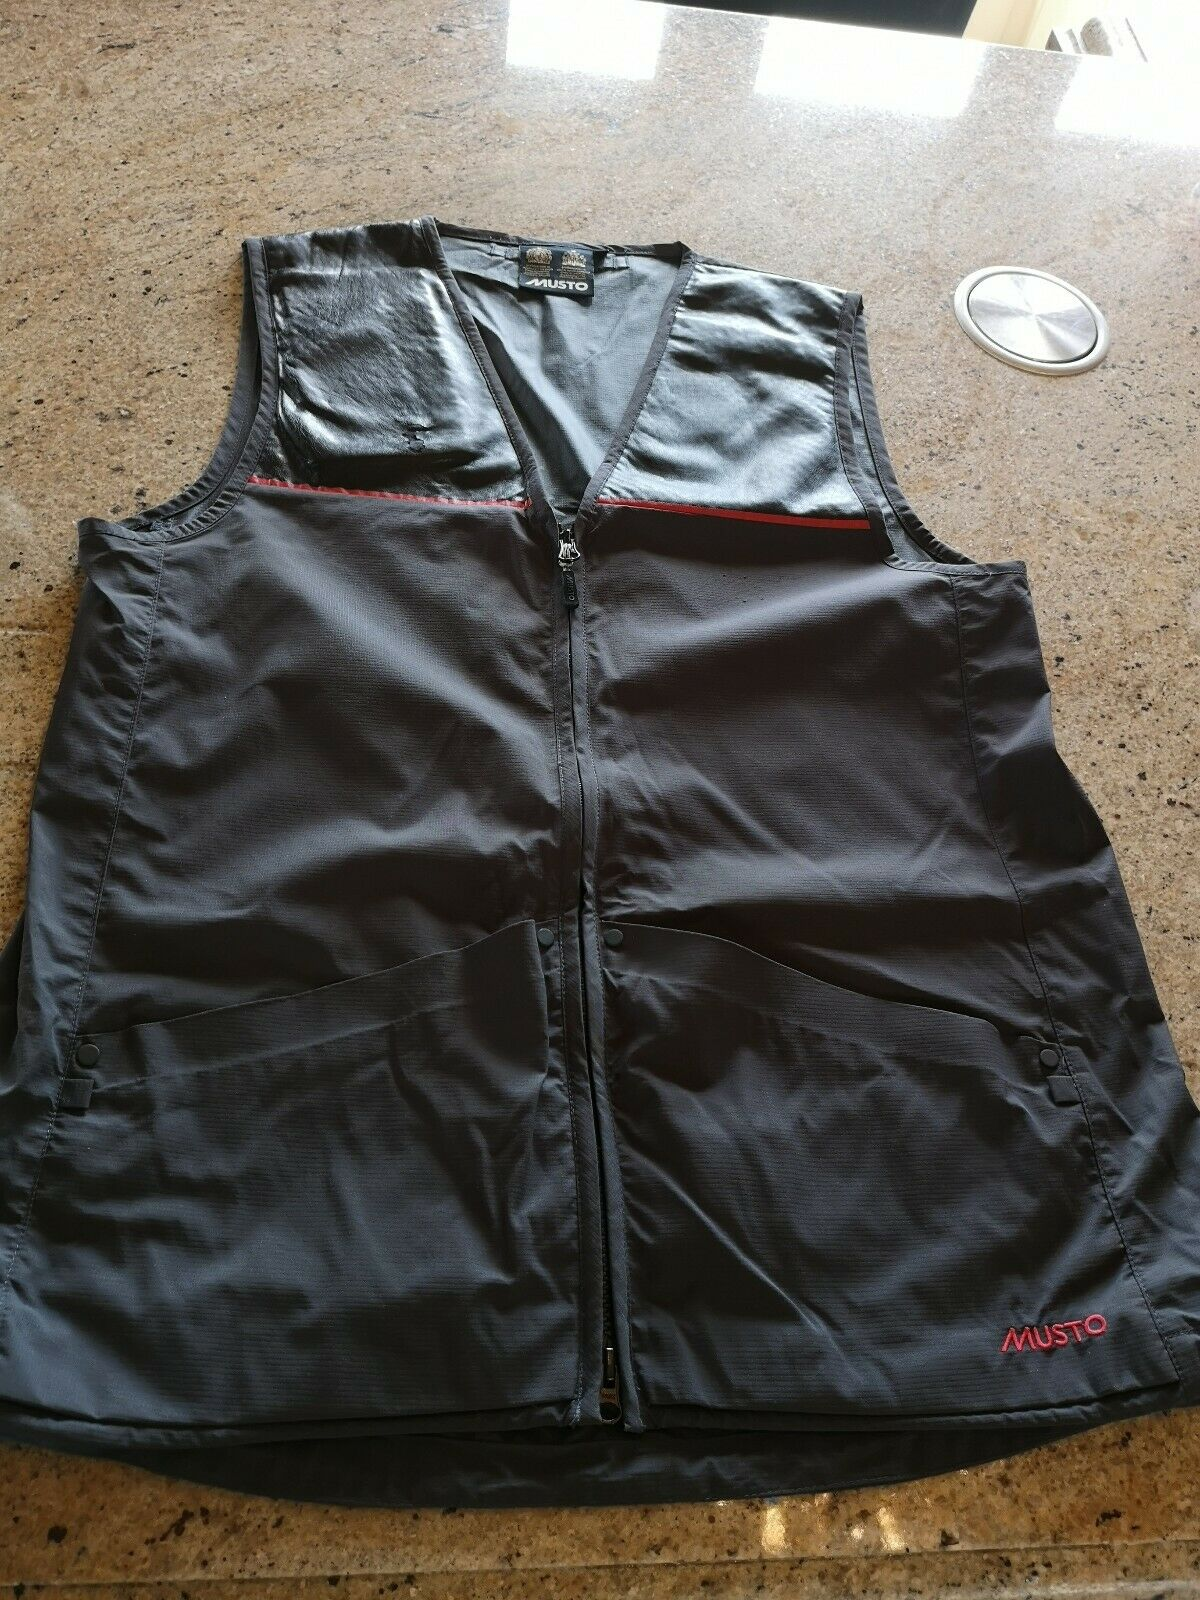 Musto Shooting Vest. Used. Good Condition. Size Medium